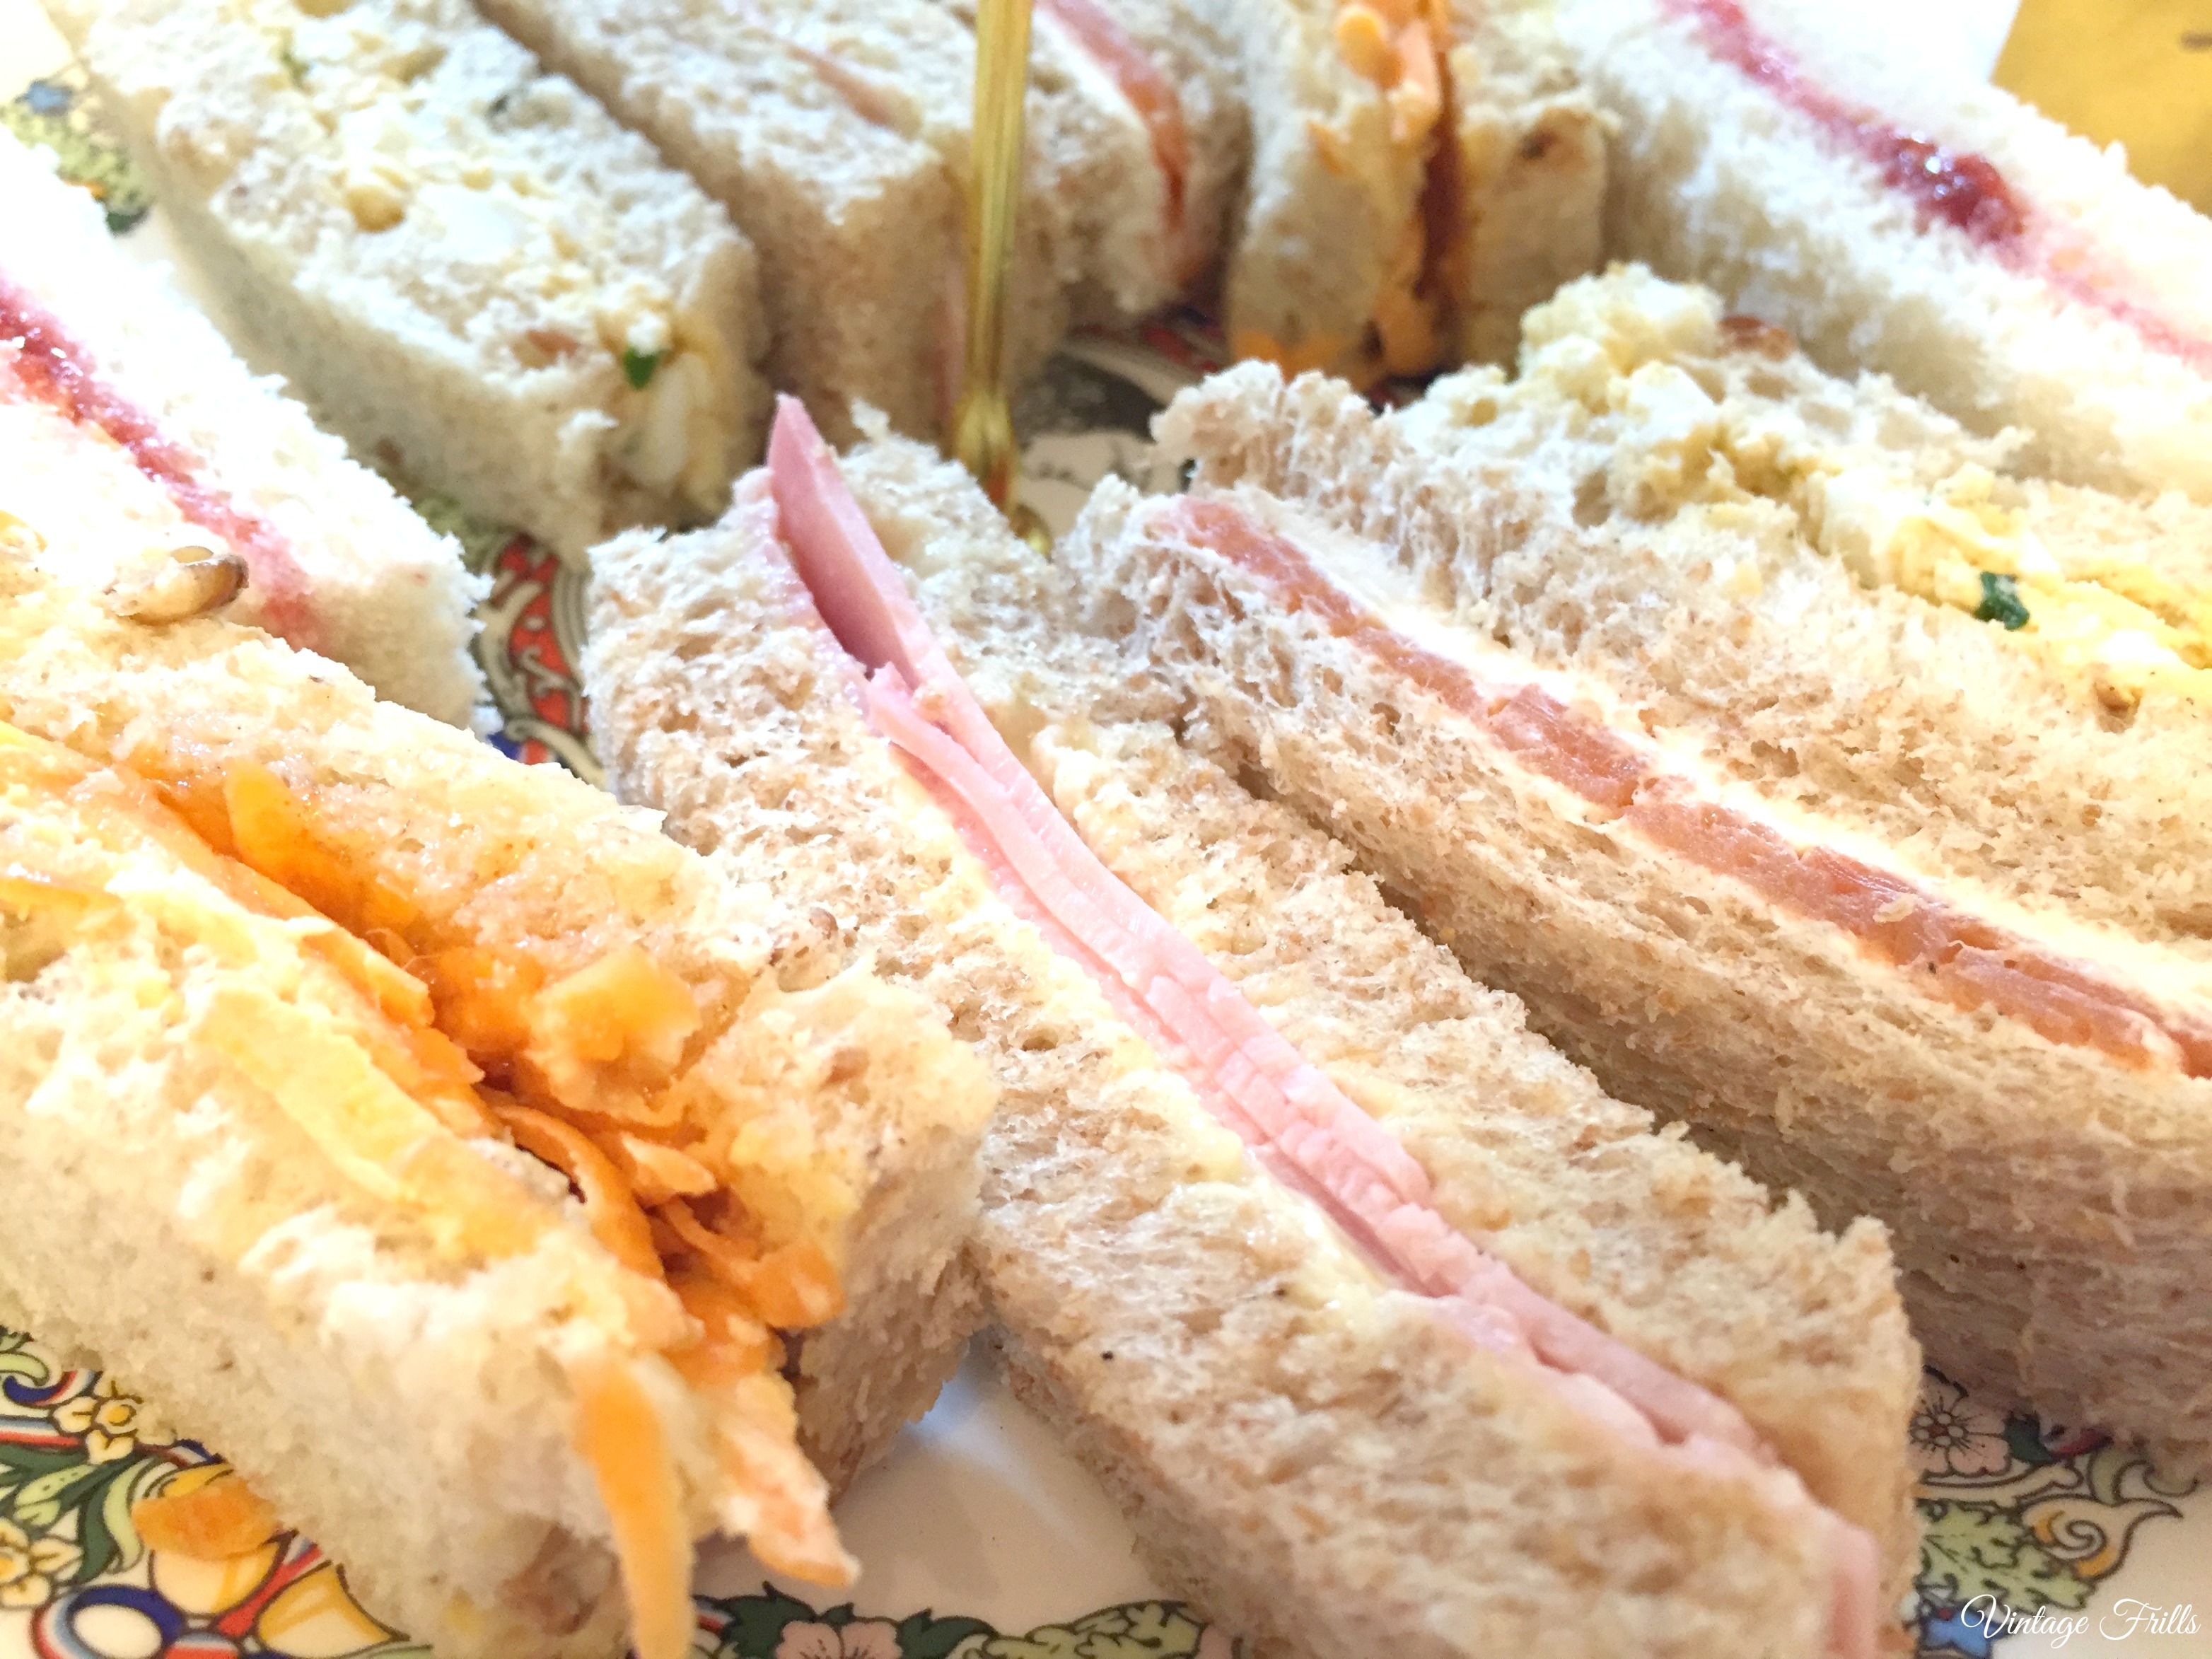 Little Nan's Sutton House Afternoon Tea Sandwiches